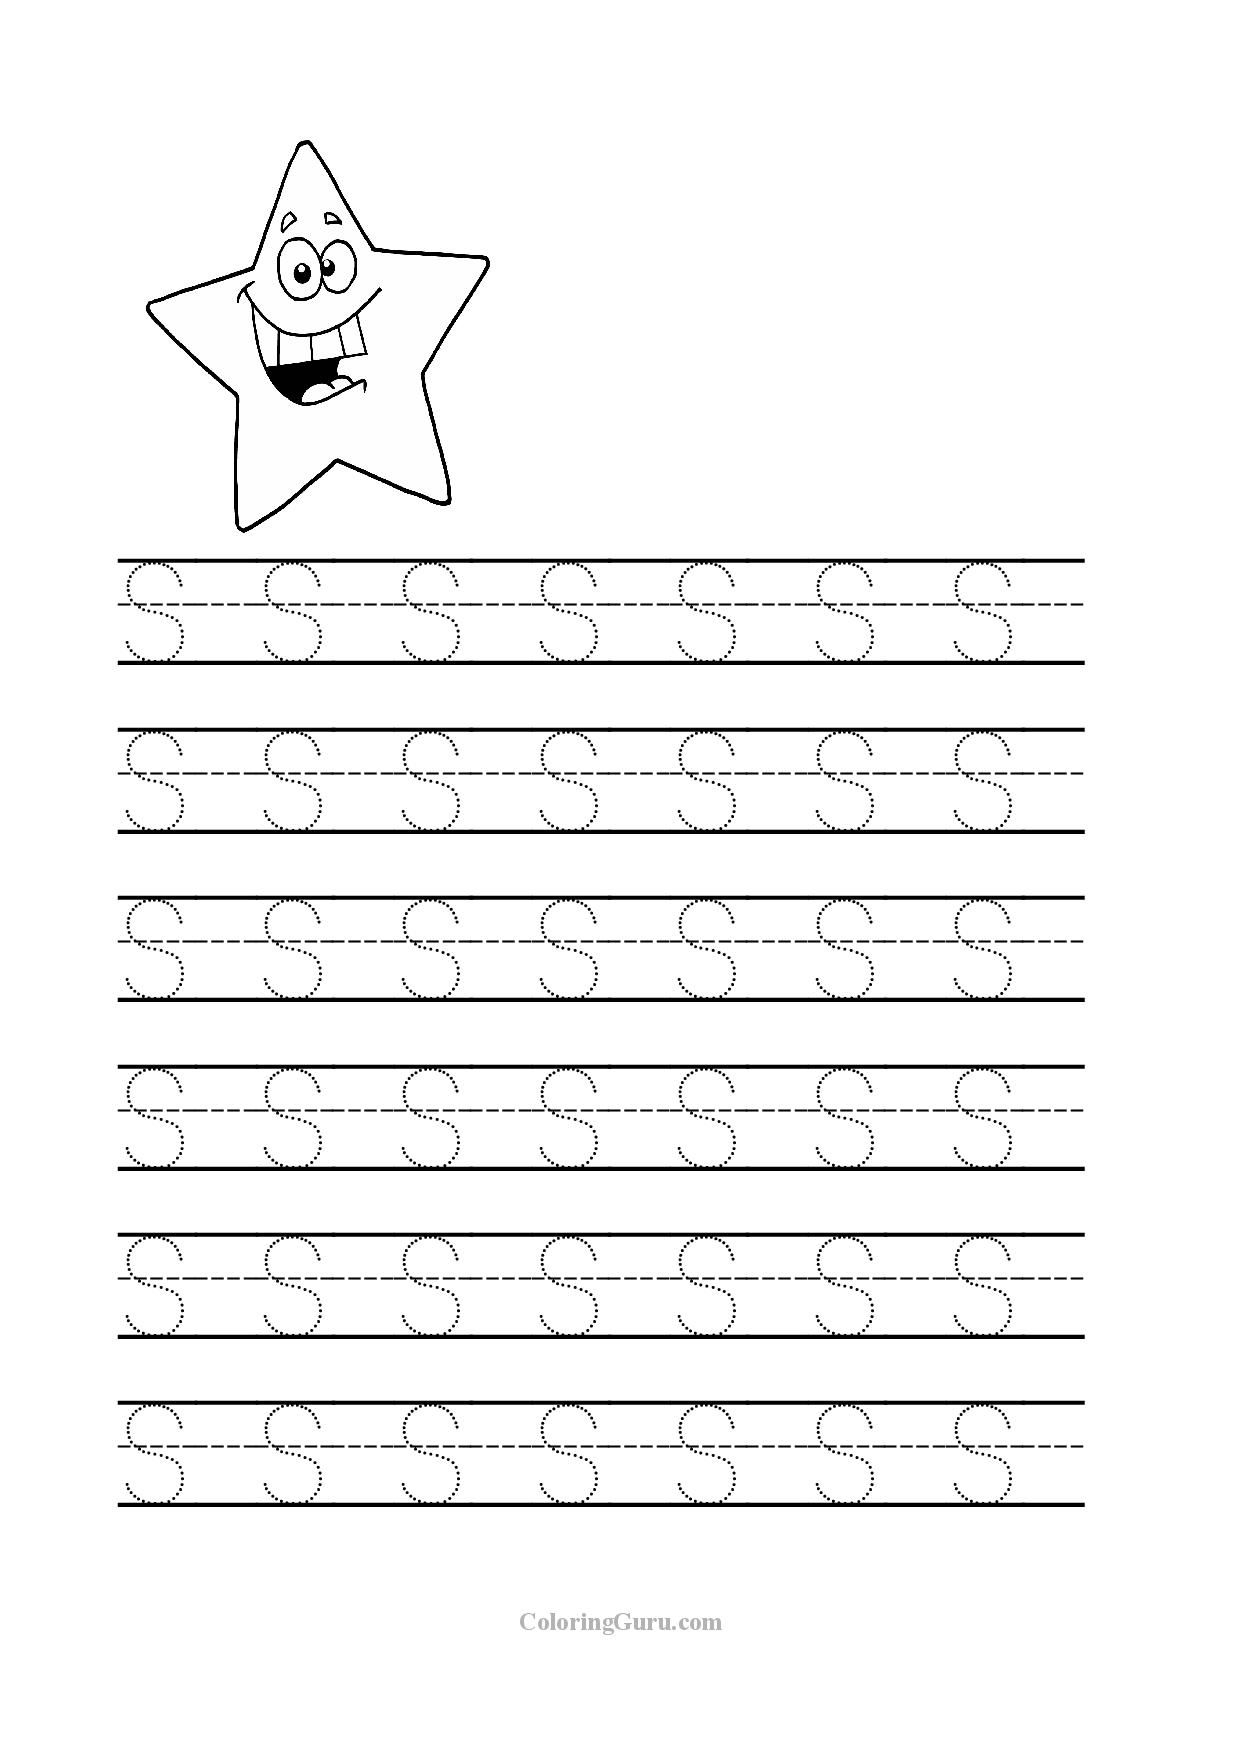 Free Printable Tracing Letter S Worksheets For Preschool intended for Letter S Worksheets